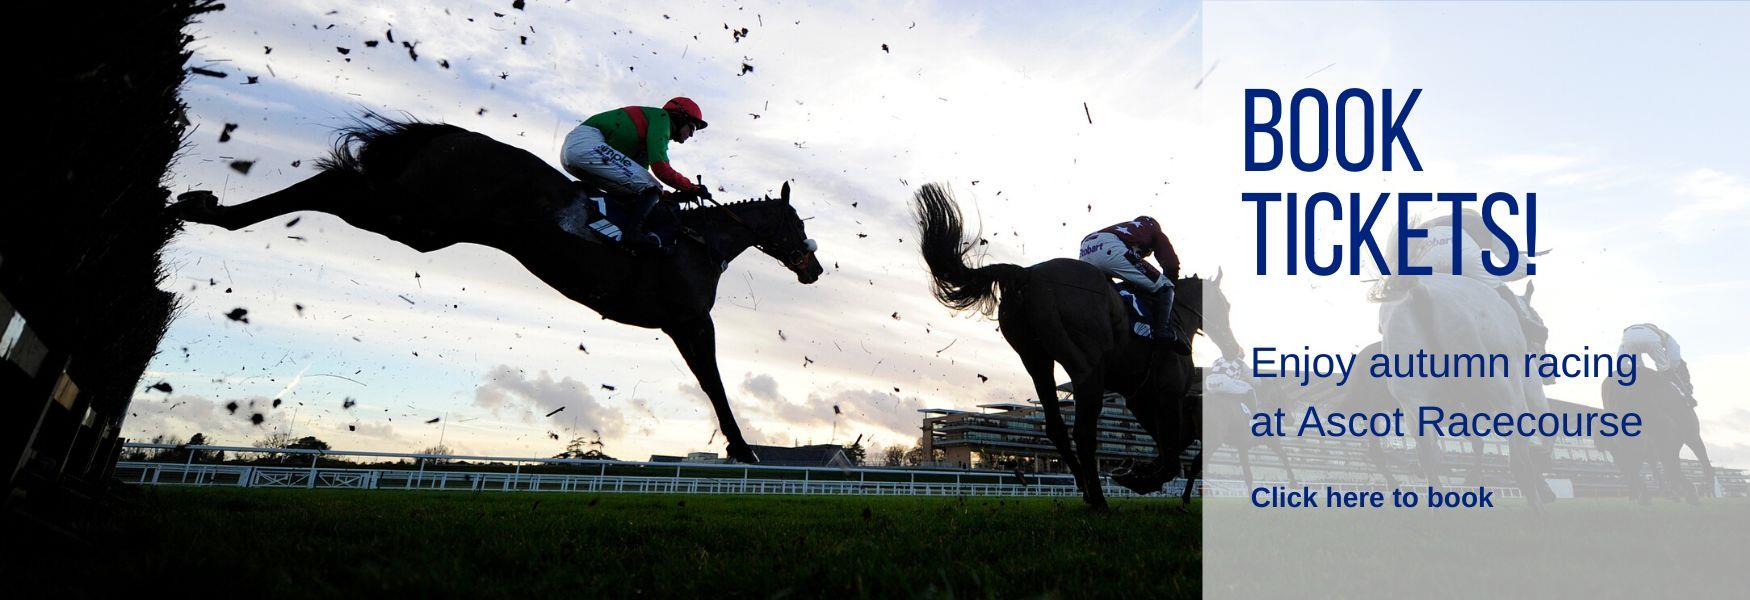 Book thrilling autumn racing at Ascot